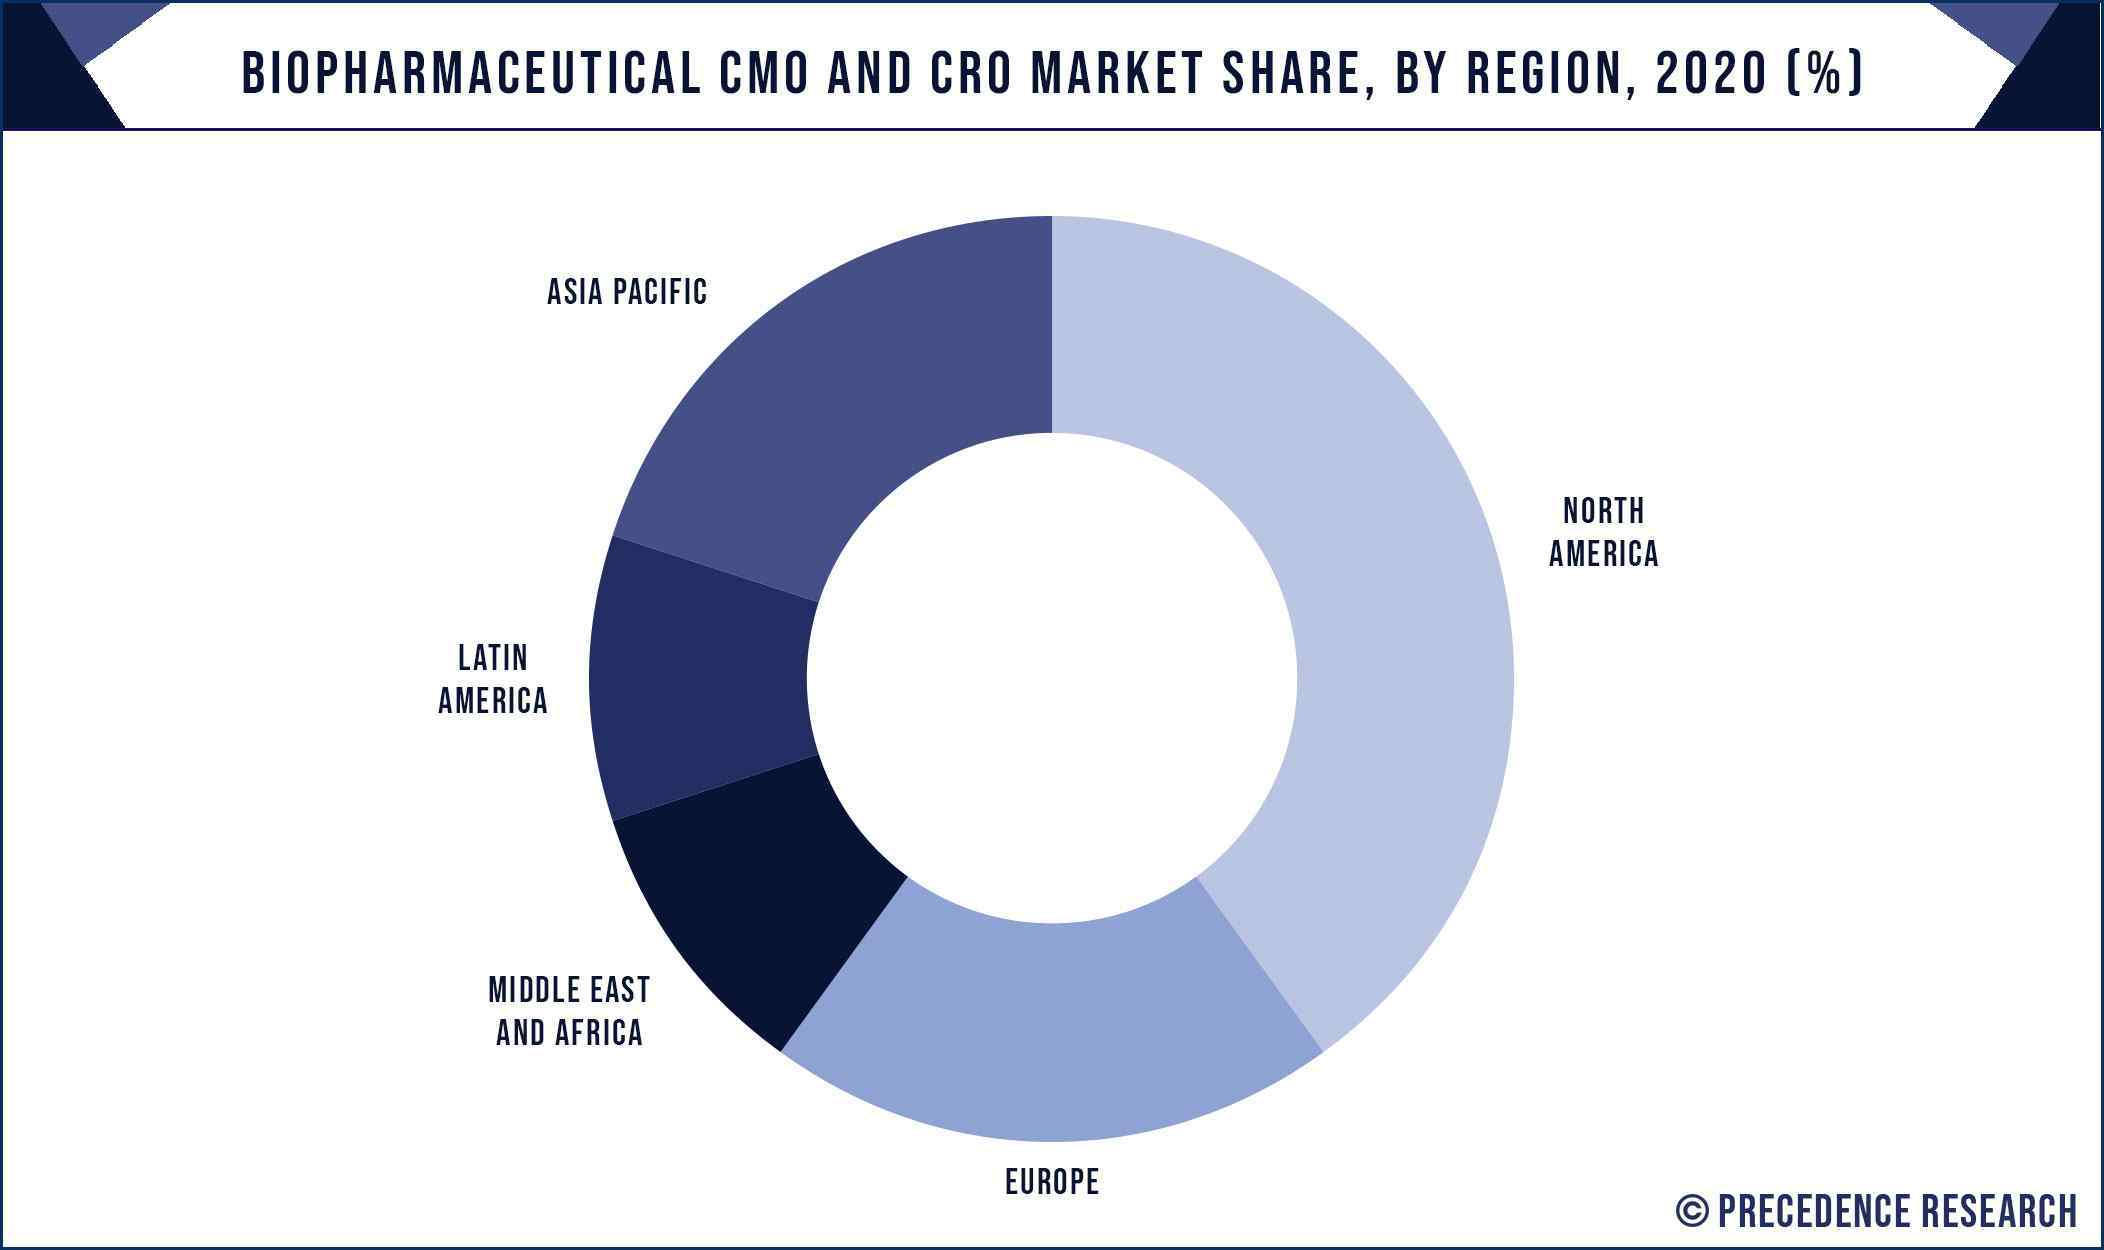 Biopharmaceutical CMO and CRO Market Share, By Region, 2020 (%)